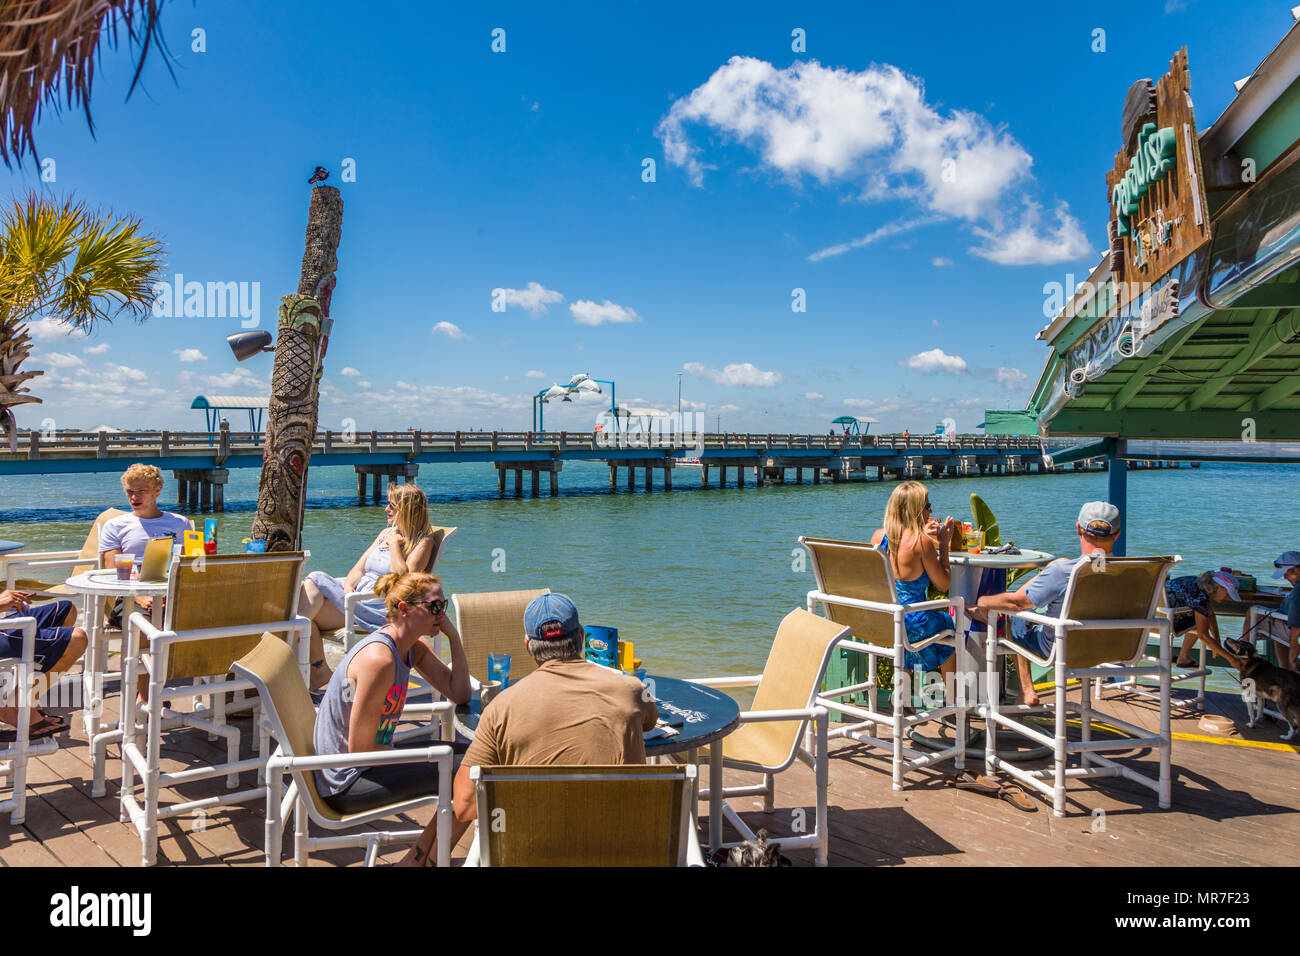 People enjoying summer day at Beaches at Vilano waterfront outdoor restaurant cafe in Vilano Beach near St Augustine Florida Stock Photo